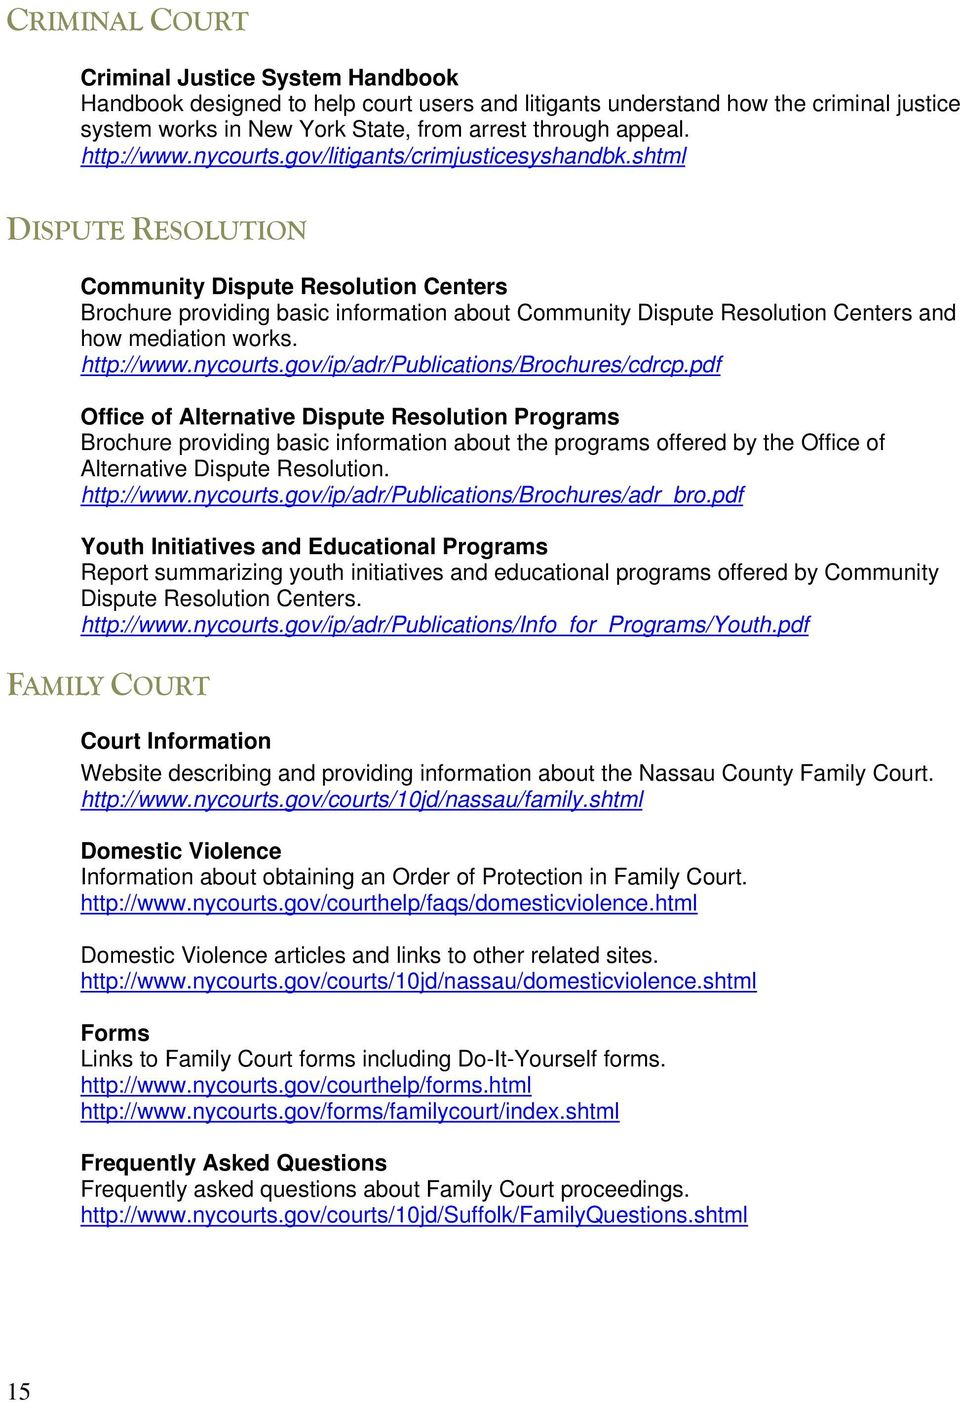 shtml DISPUTE RESOLUTION Community Dispute Resolution Centers Brochure providing basic information about Community Dispute Resolution Centers and how mediation works. http://www.nycourts.